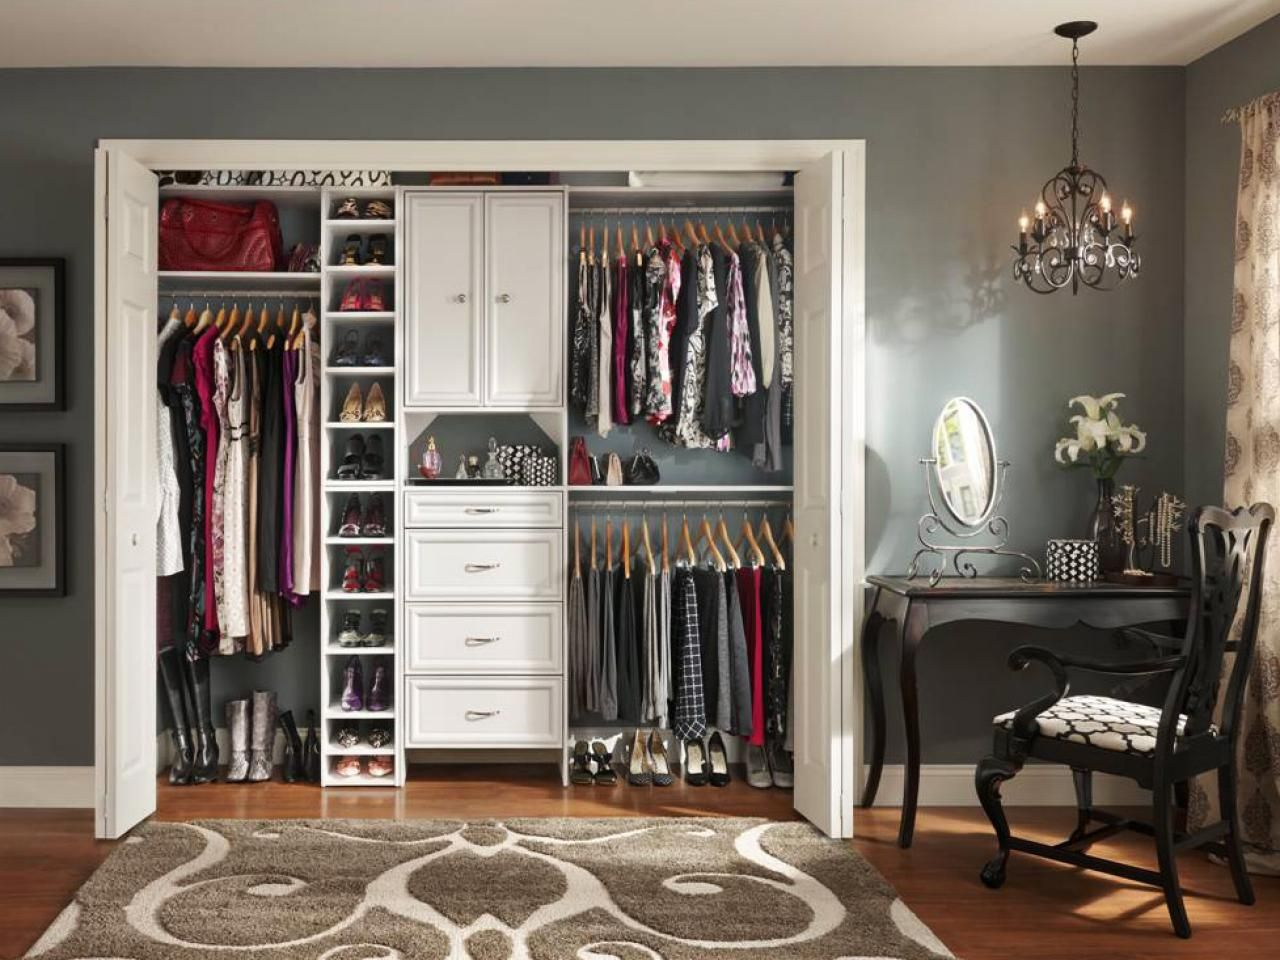 Small Closet Organization Ideas: Pictures, Options & Tips ...